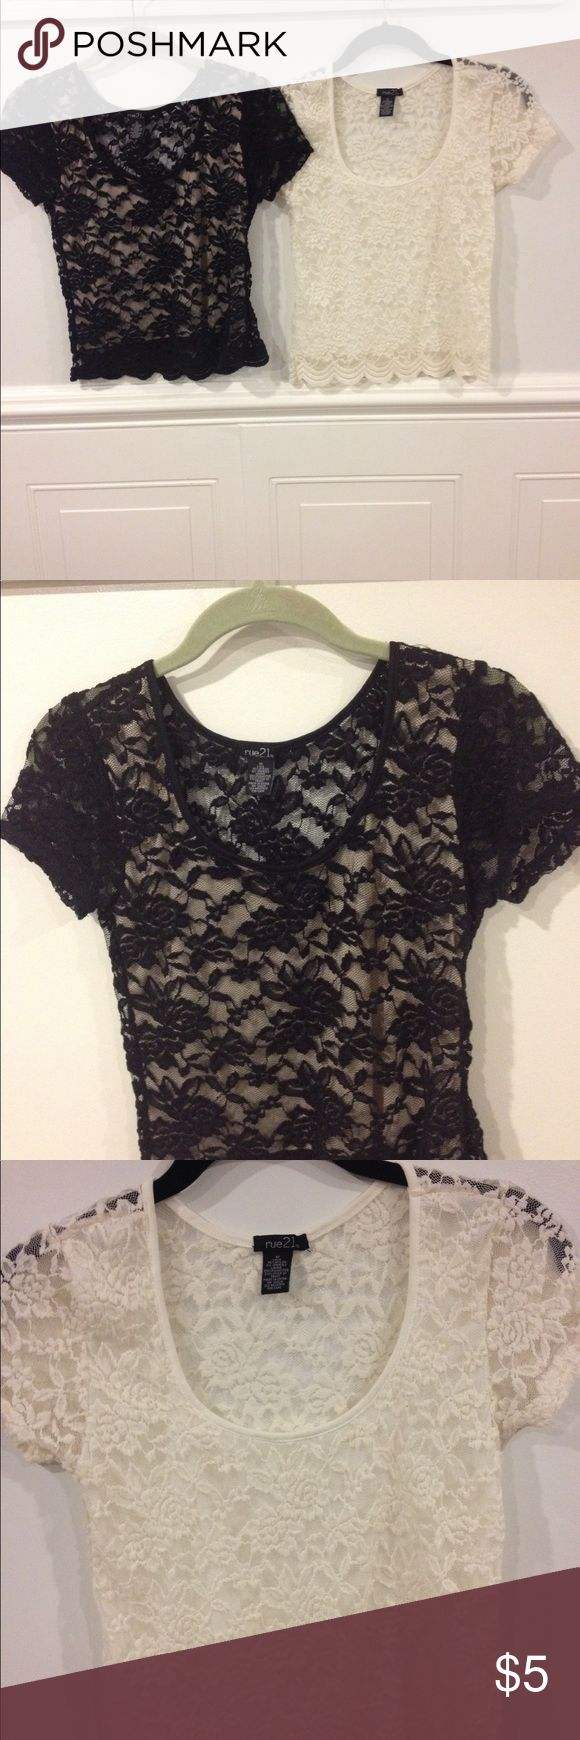 Rue21 Medium tops good condition Size Medium Rue21 tops good condition the set is 5.00 Rue 21 Tops